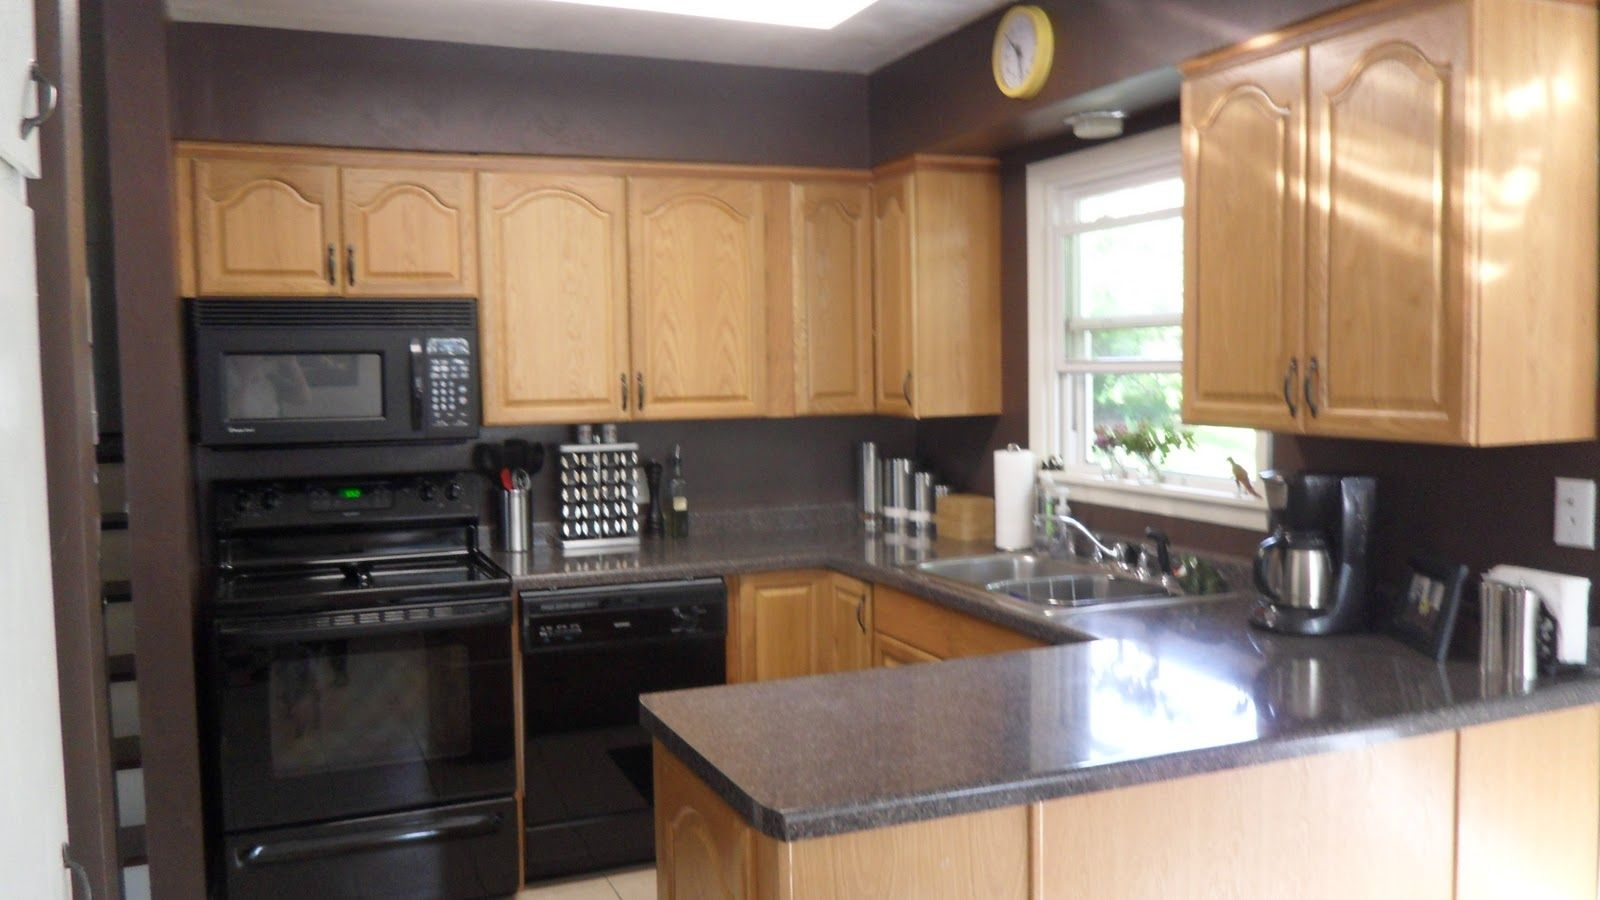 Kitchen Colors With Light Wood Cabinets Good Colors For Kitchen Walls With Oak Cupboards Kitchen